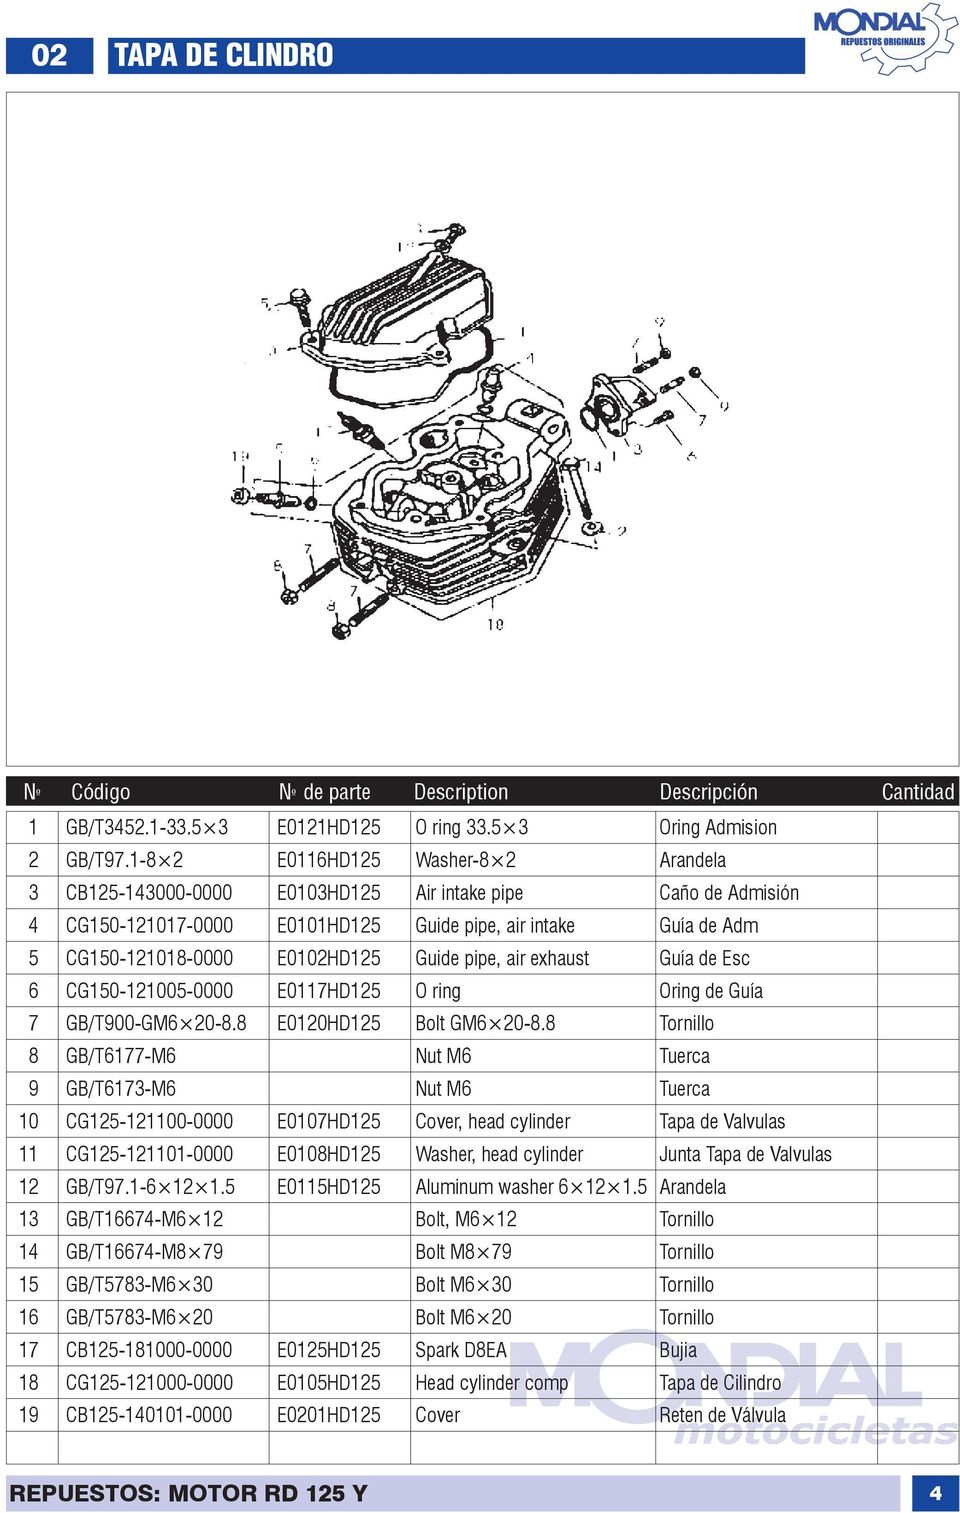 Guide pipe, air exhaust Guía de Esc 6 CG150-121005-0000 E0117HD125 O ring oring de Guía 7 GB/T900-GM6 20-8.8 E0120HD125 Bolt GM6 20-8.